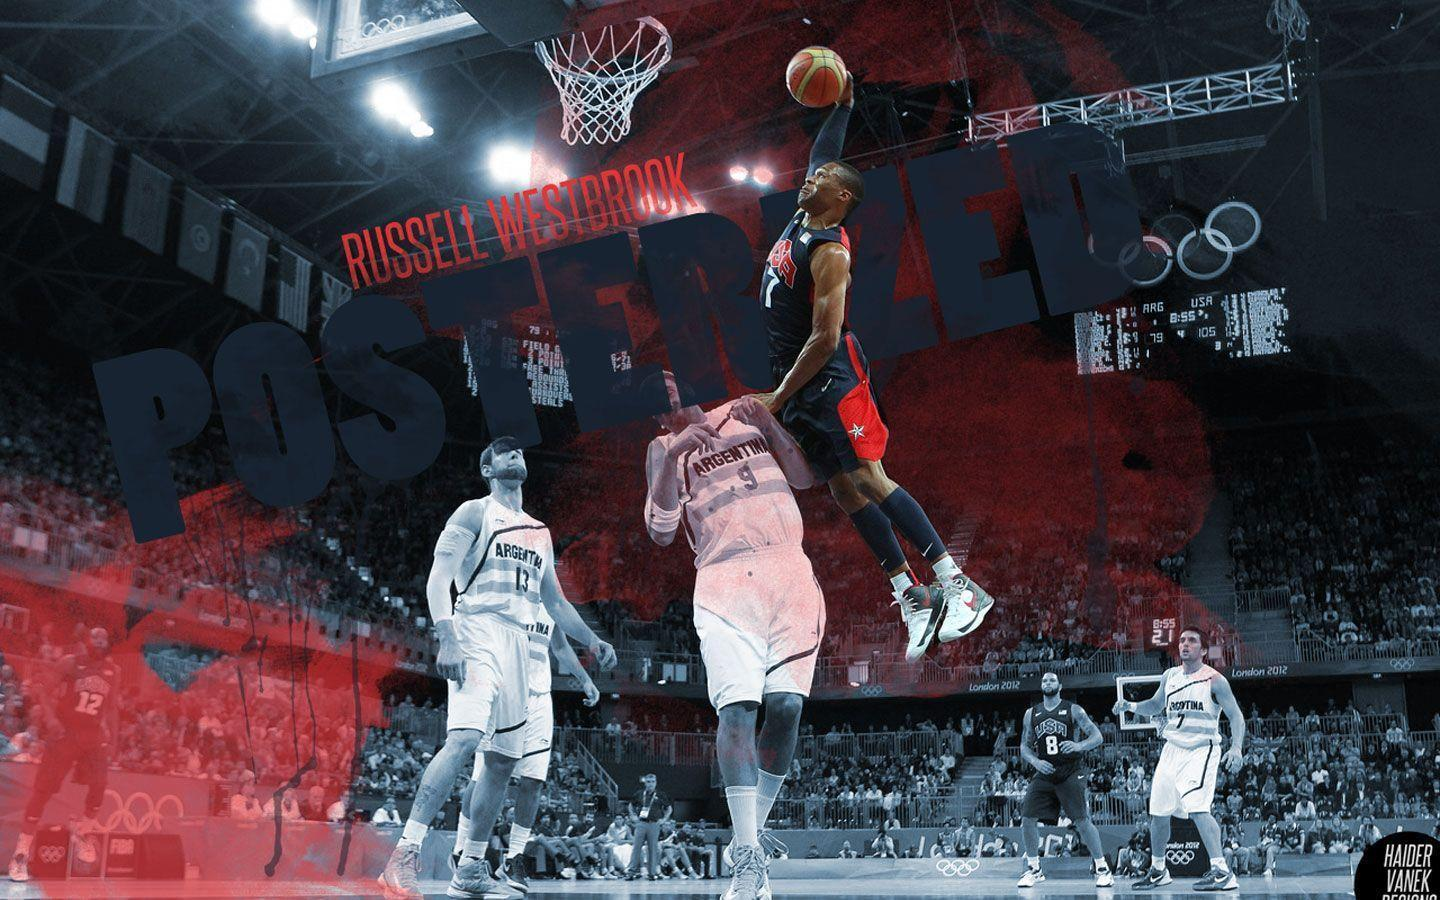 Russell westbrook wallpaper iphone wallpapersafari - Russell Westbrook Dunk Wallpaper Wallpapersafari